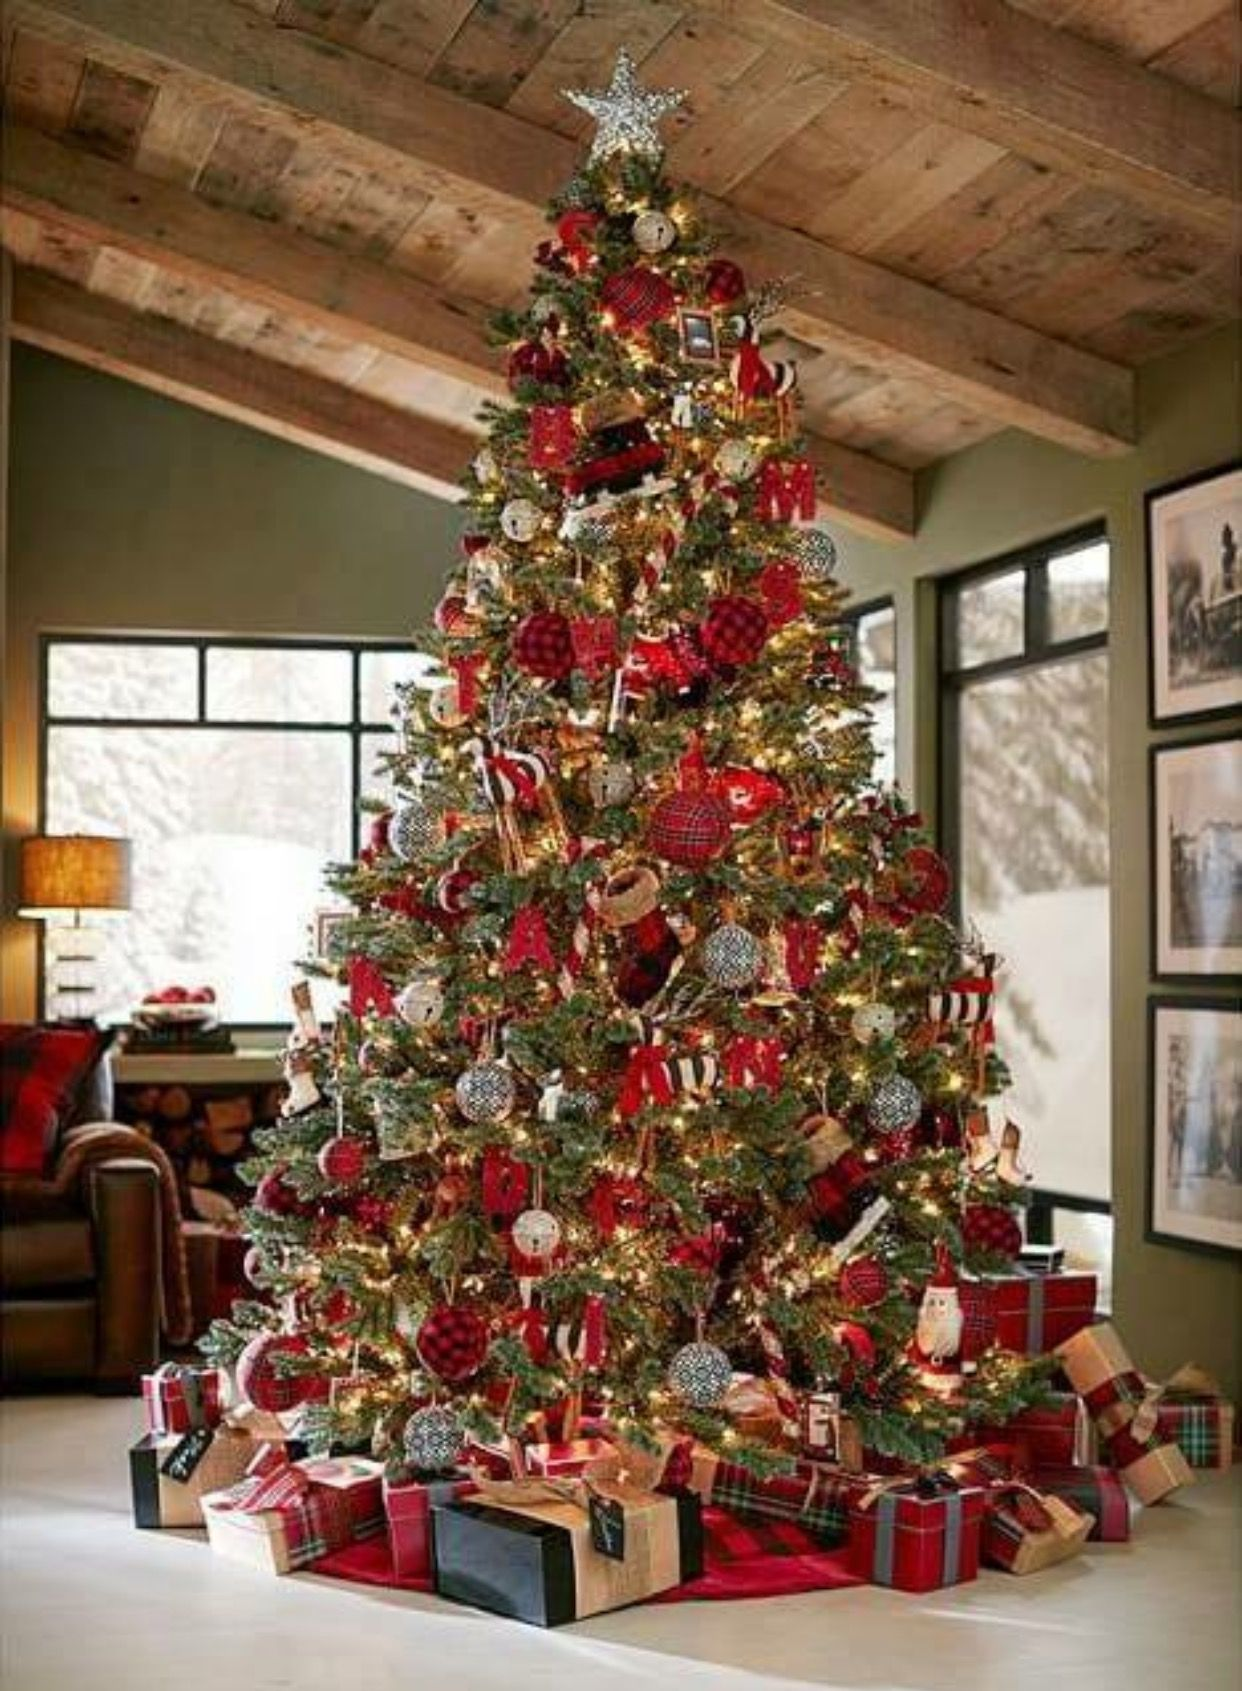 Pin by Liz Nikollaj on Inspiration | Country christmas ...